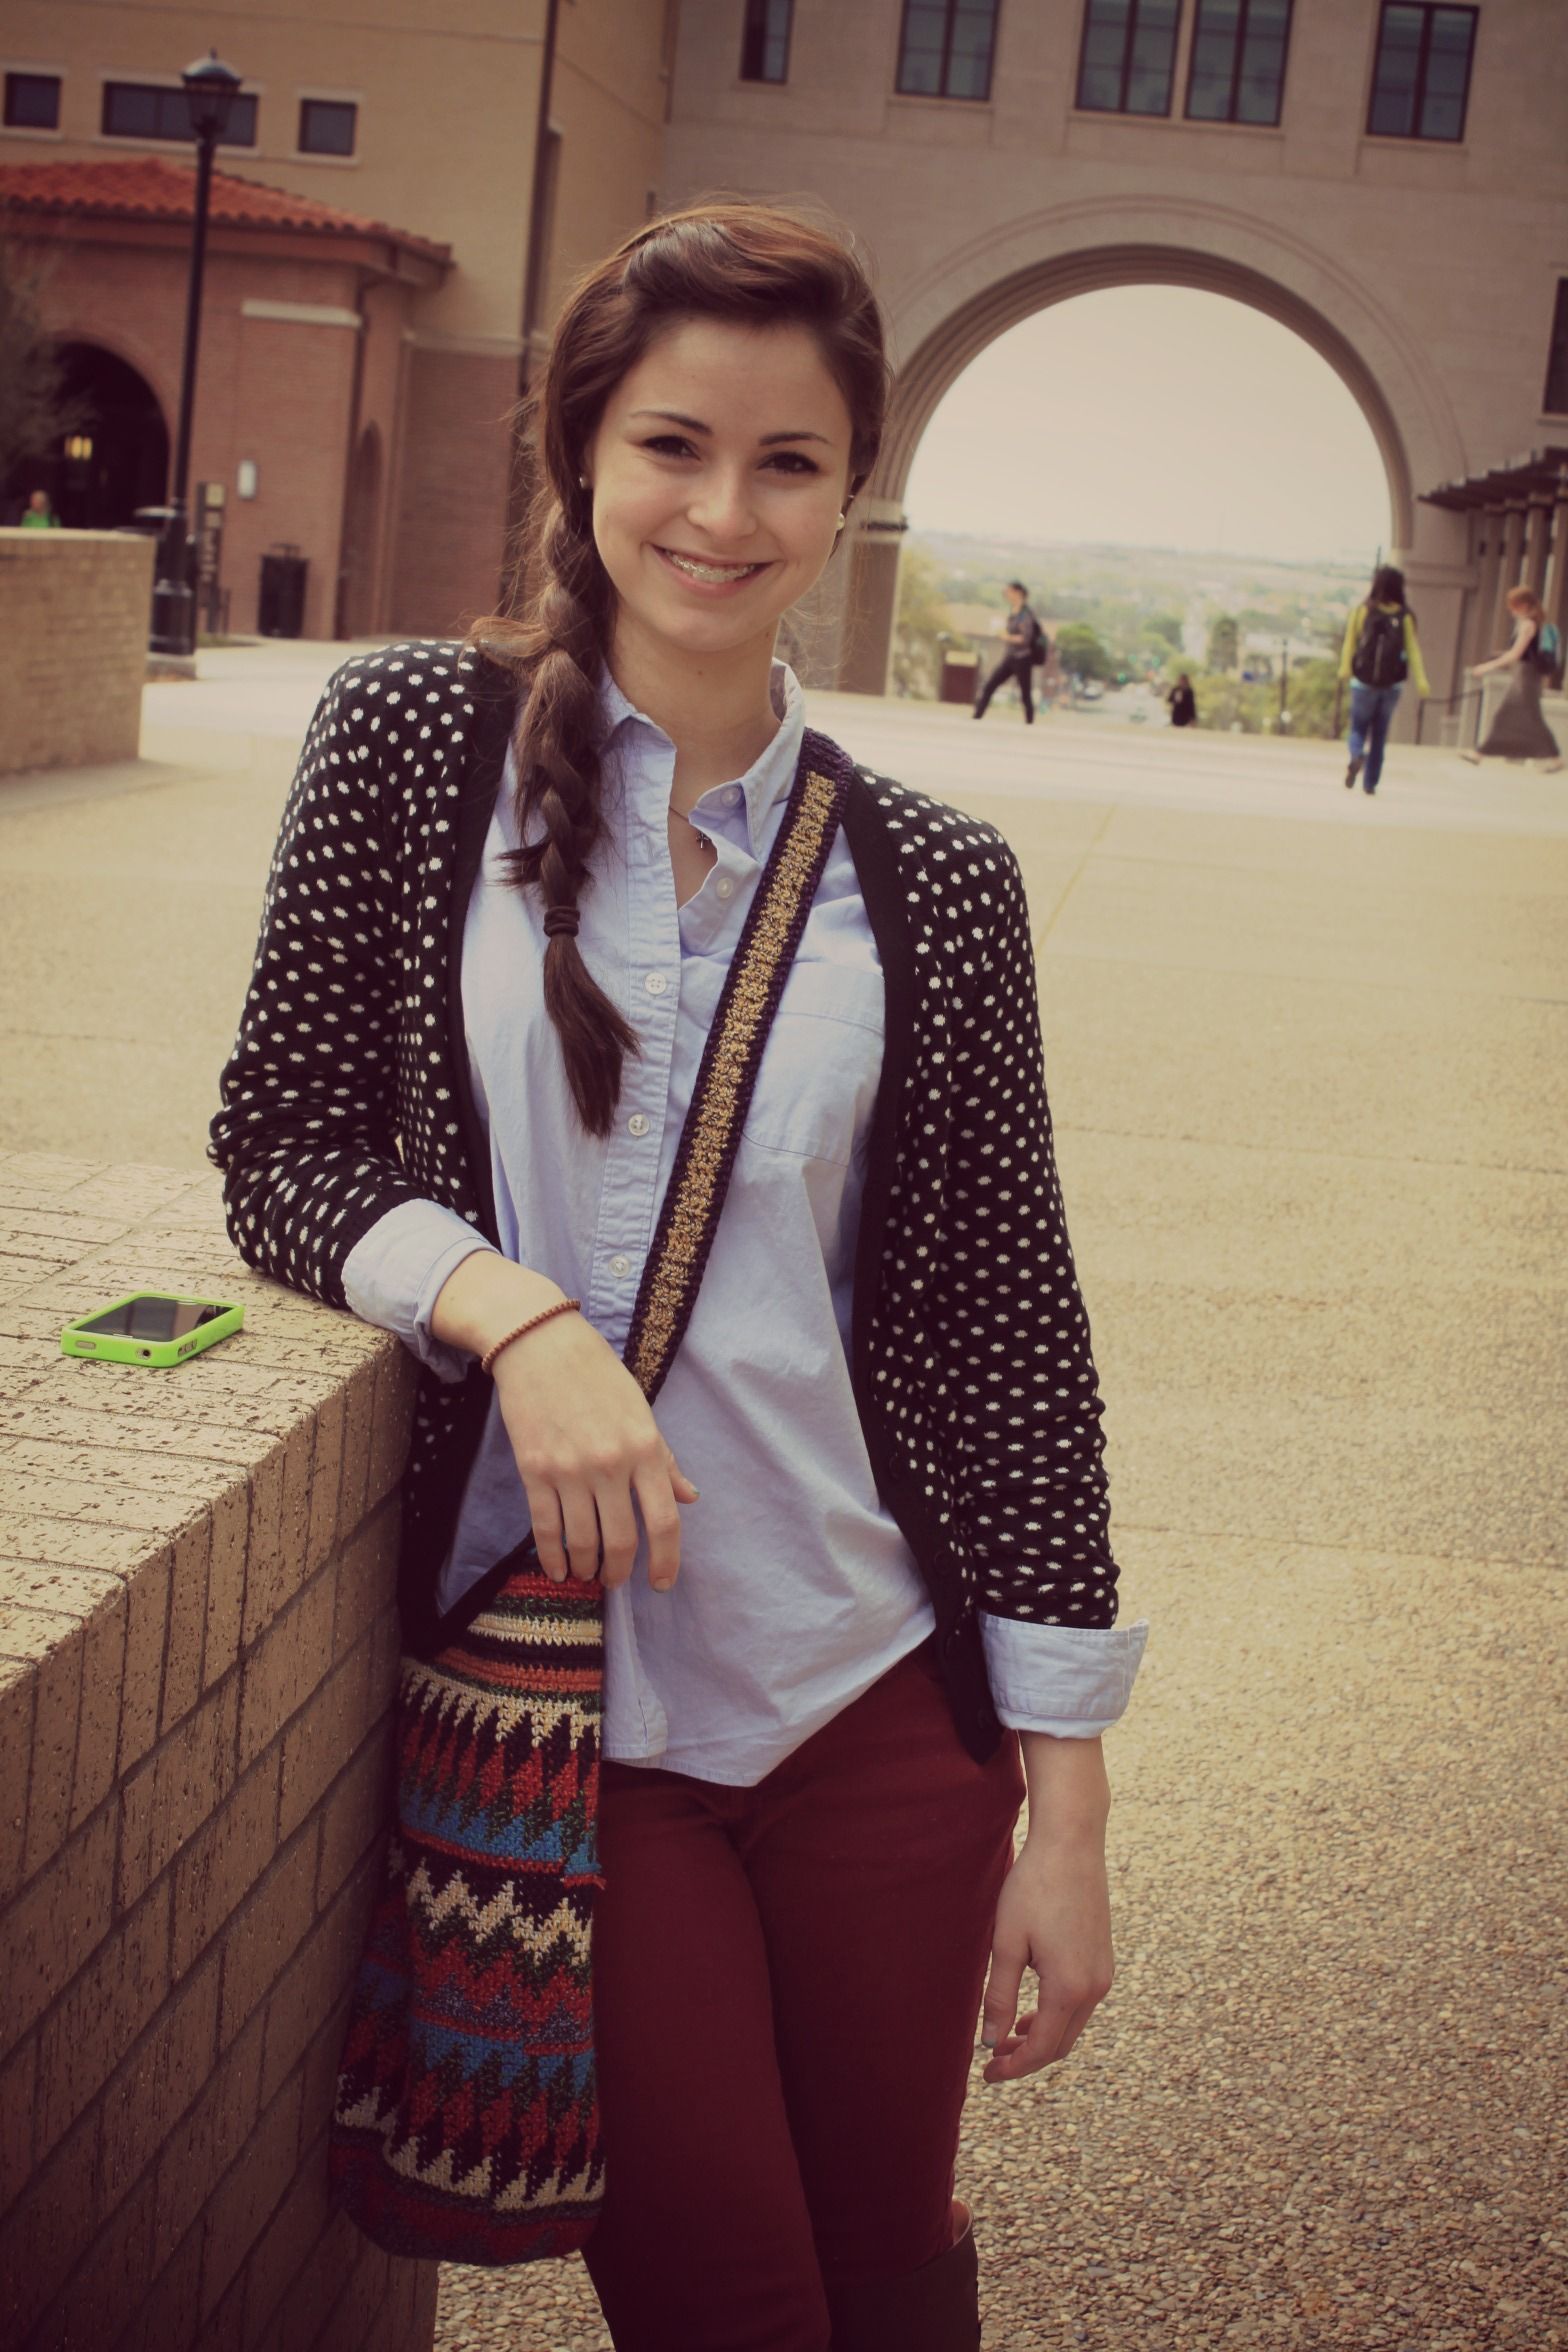 College Visit and PERFECT outfit in polka dot cardigan! | Lion ...